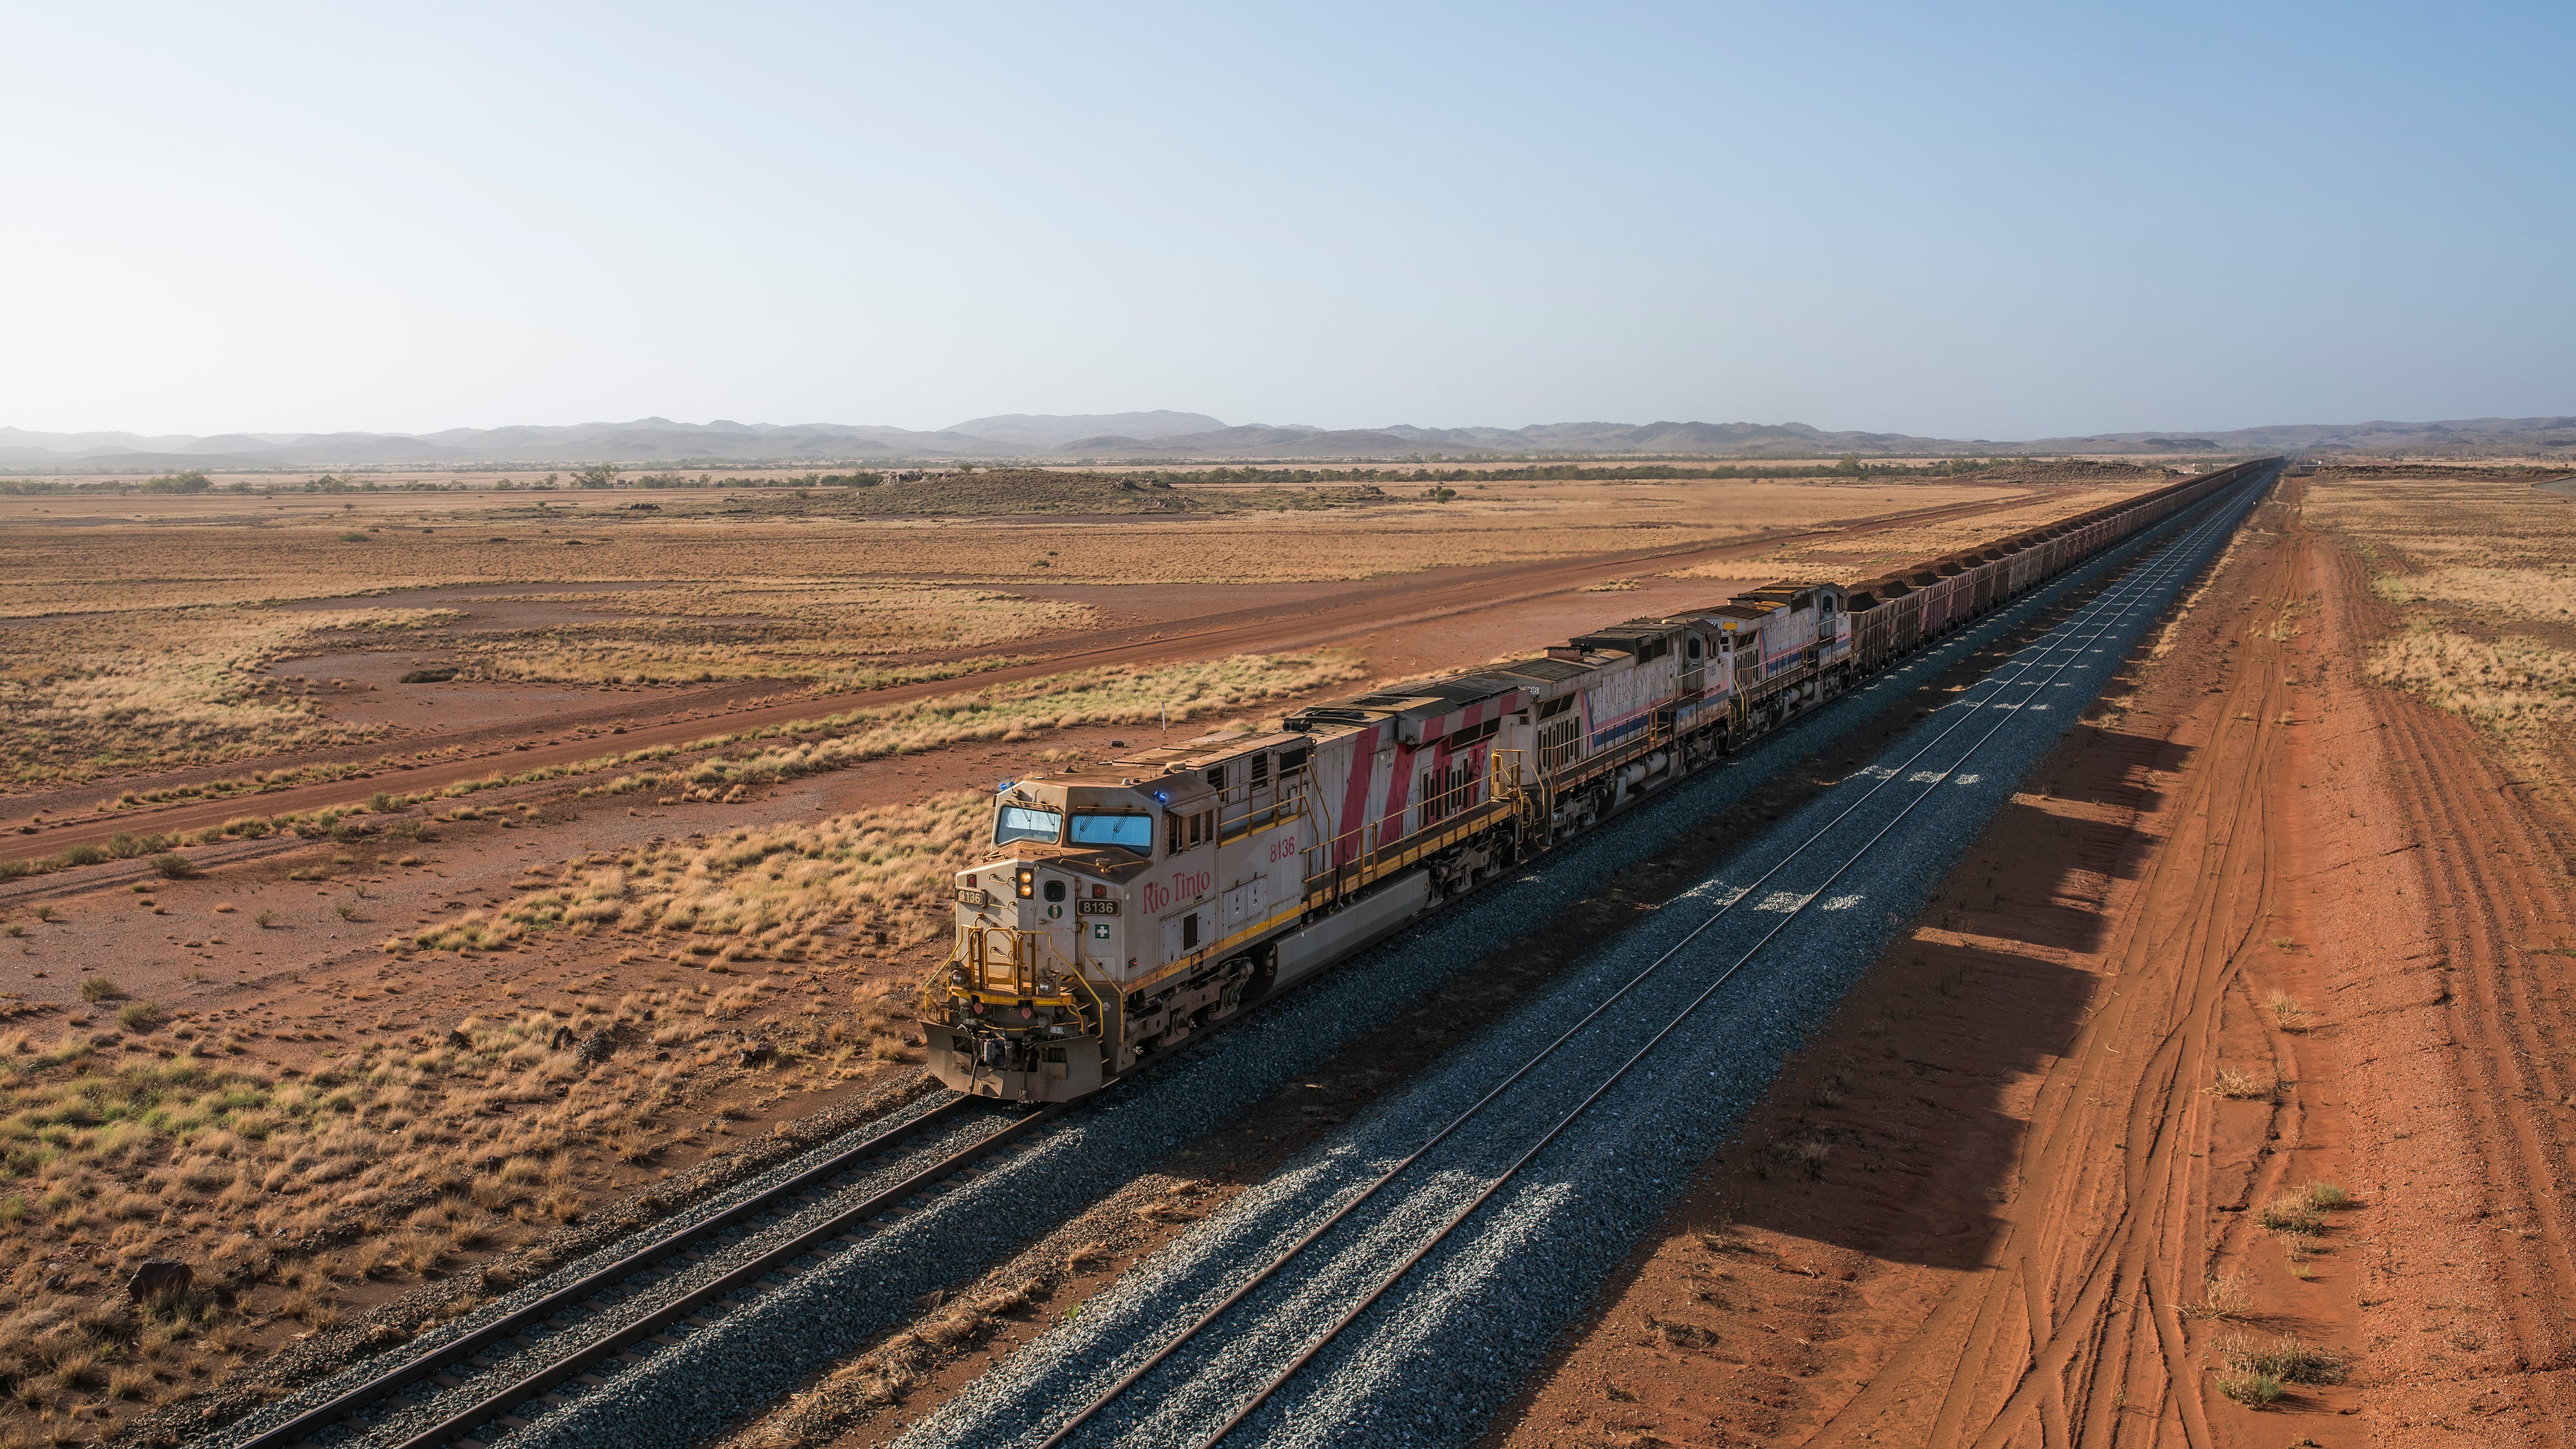 Driverless AutoHaul train, Pilbara